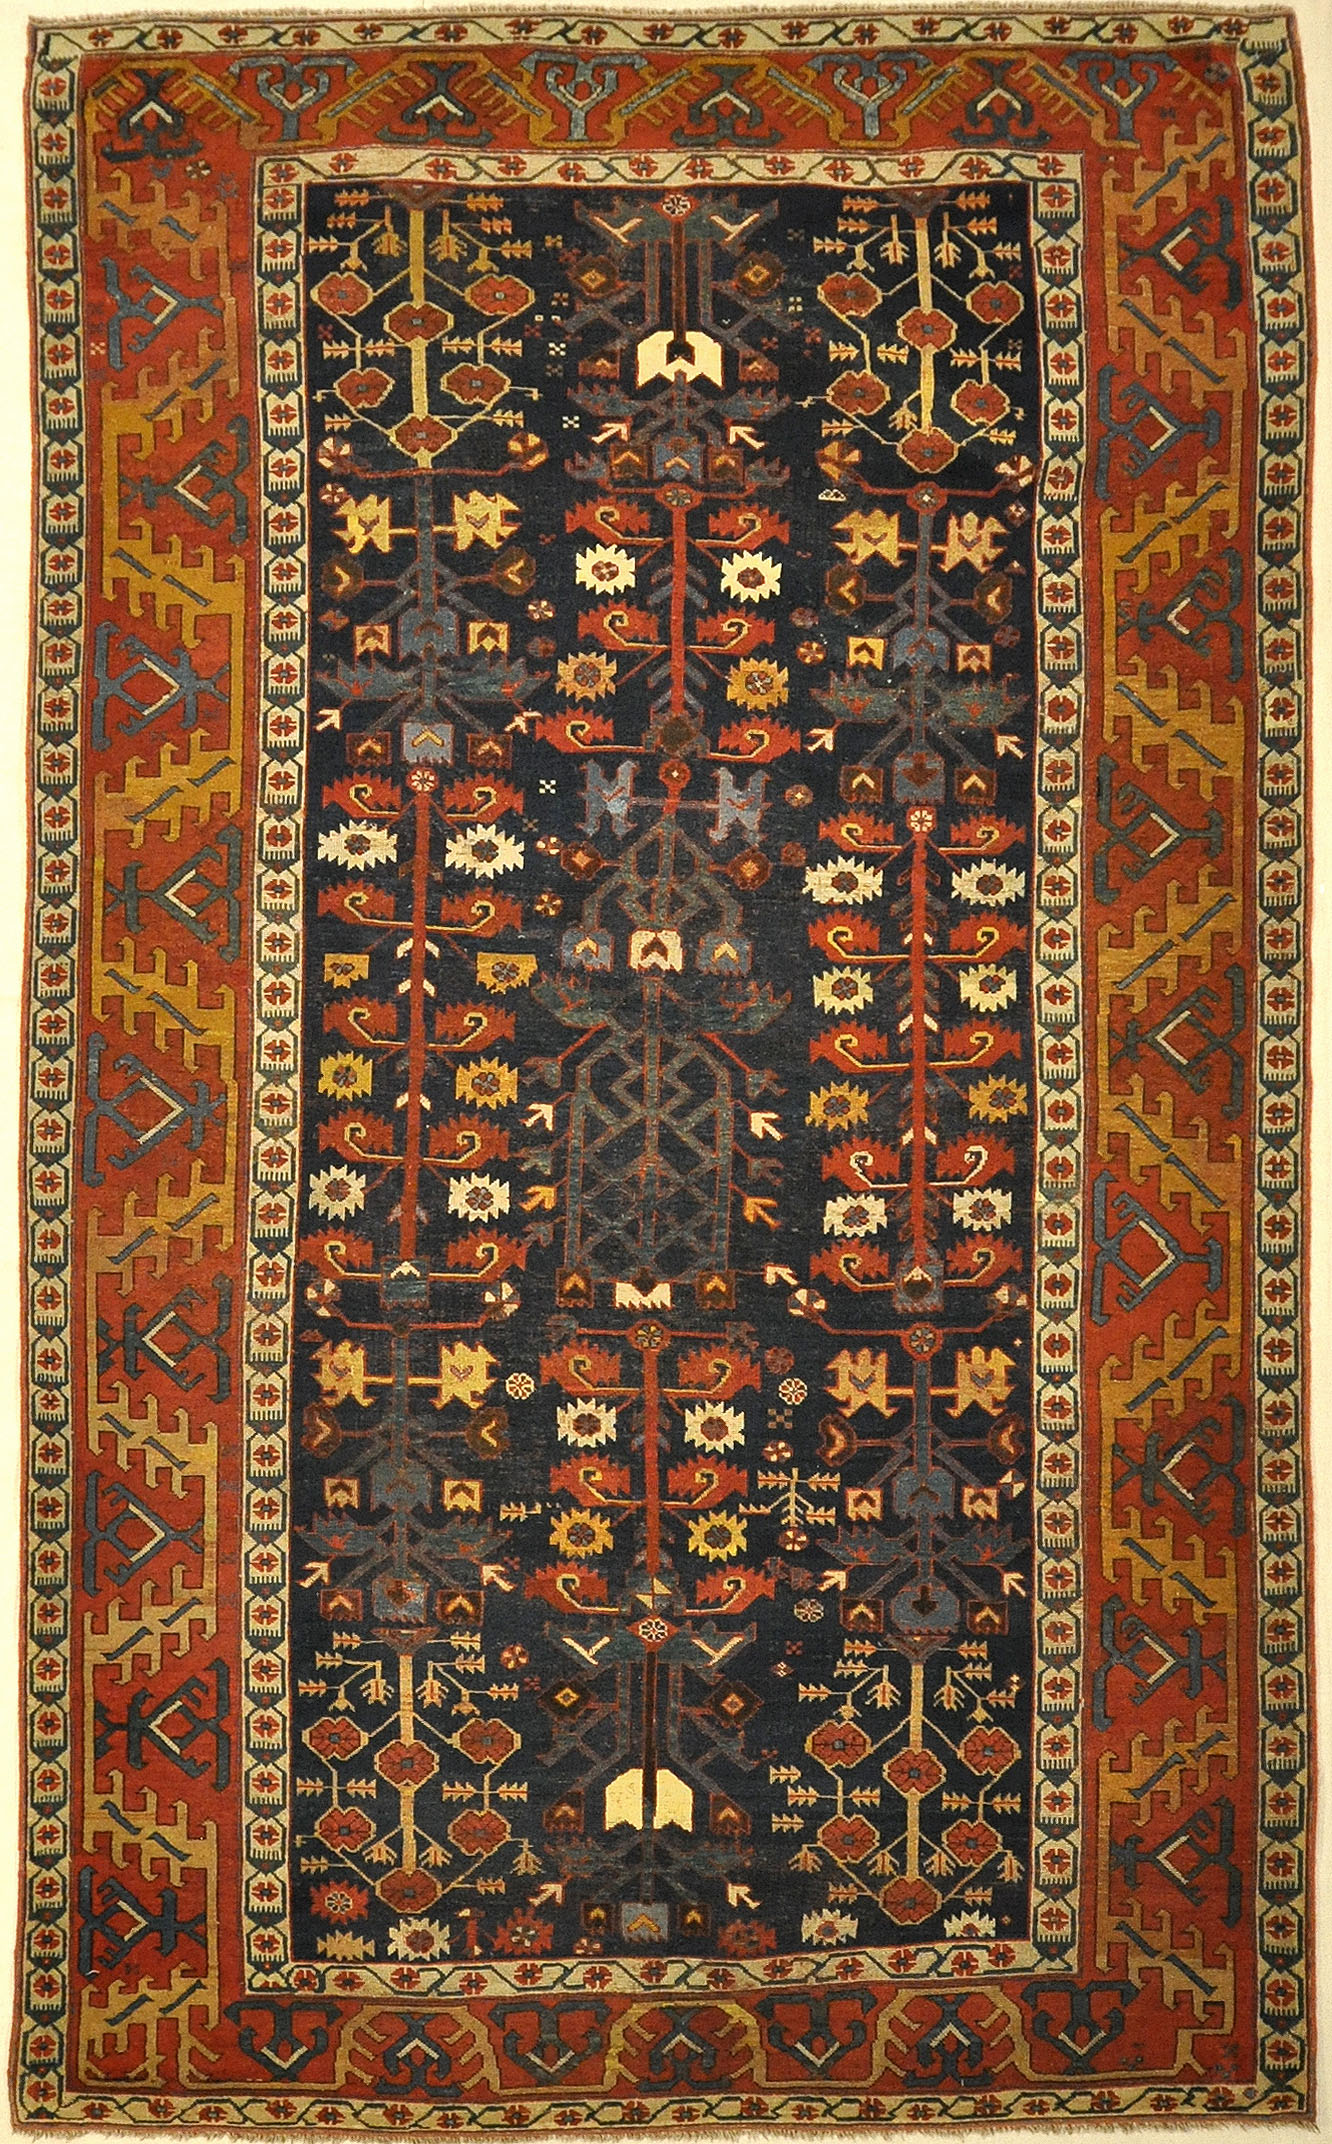 17th Century Pre-Proto Kurdish Shrub Carpet. A piece of genuine authentic antique woven carpet art sold by the Santa Barbara Design Center, Rugs and More.